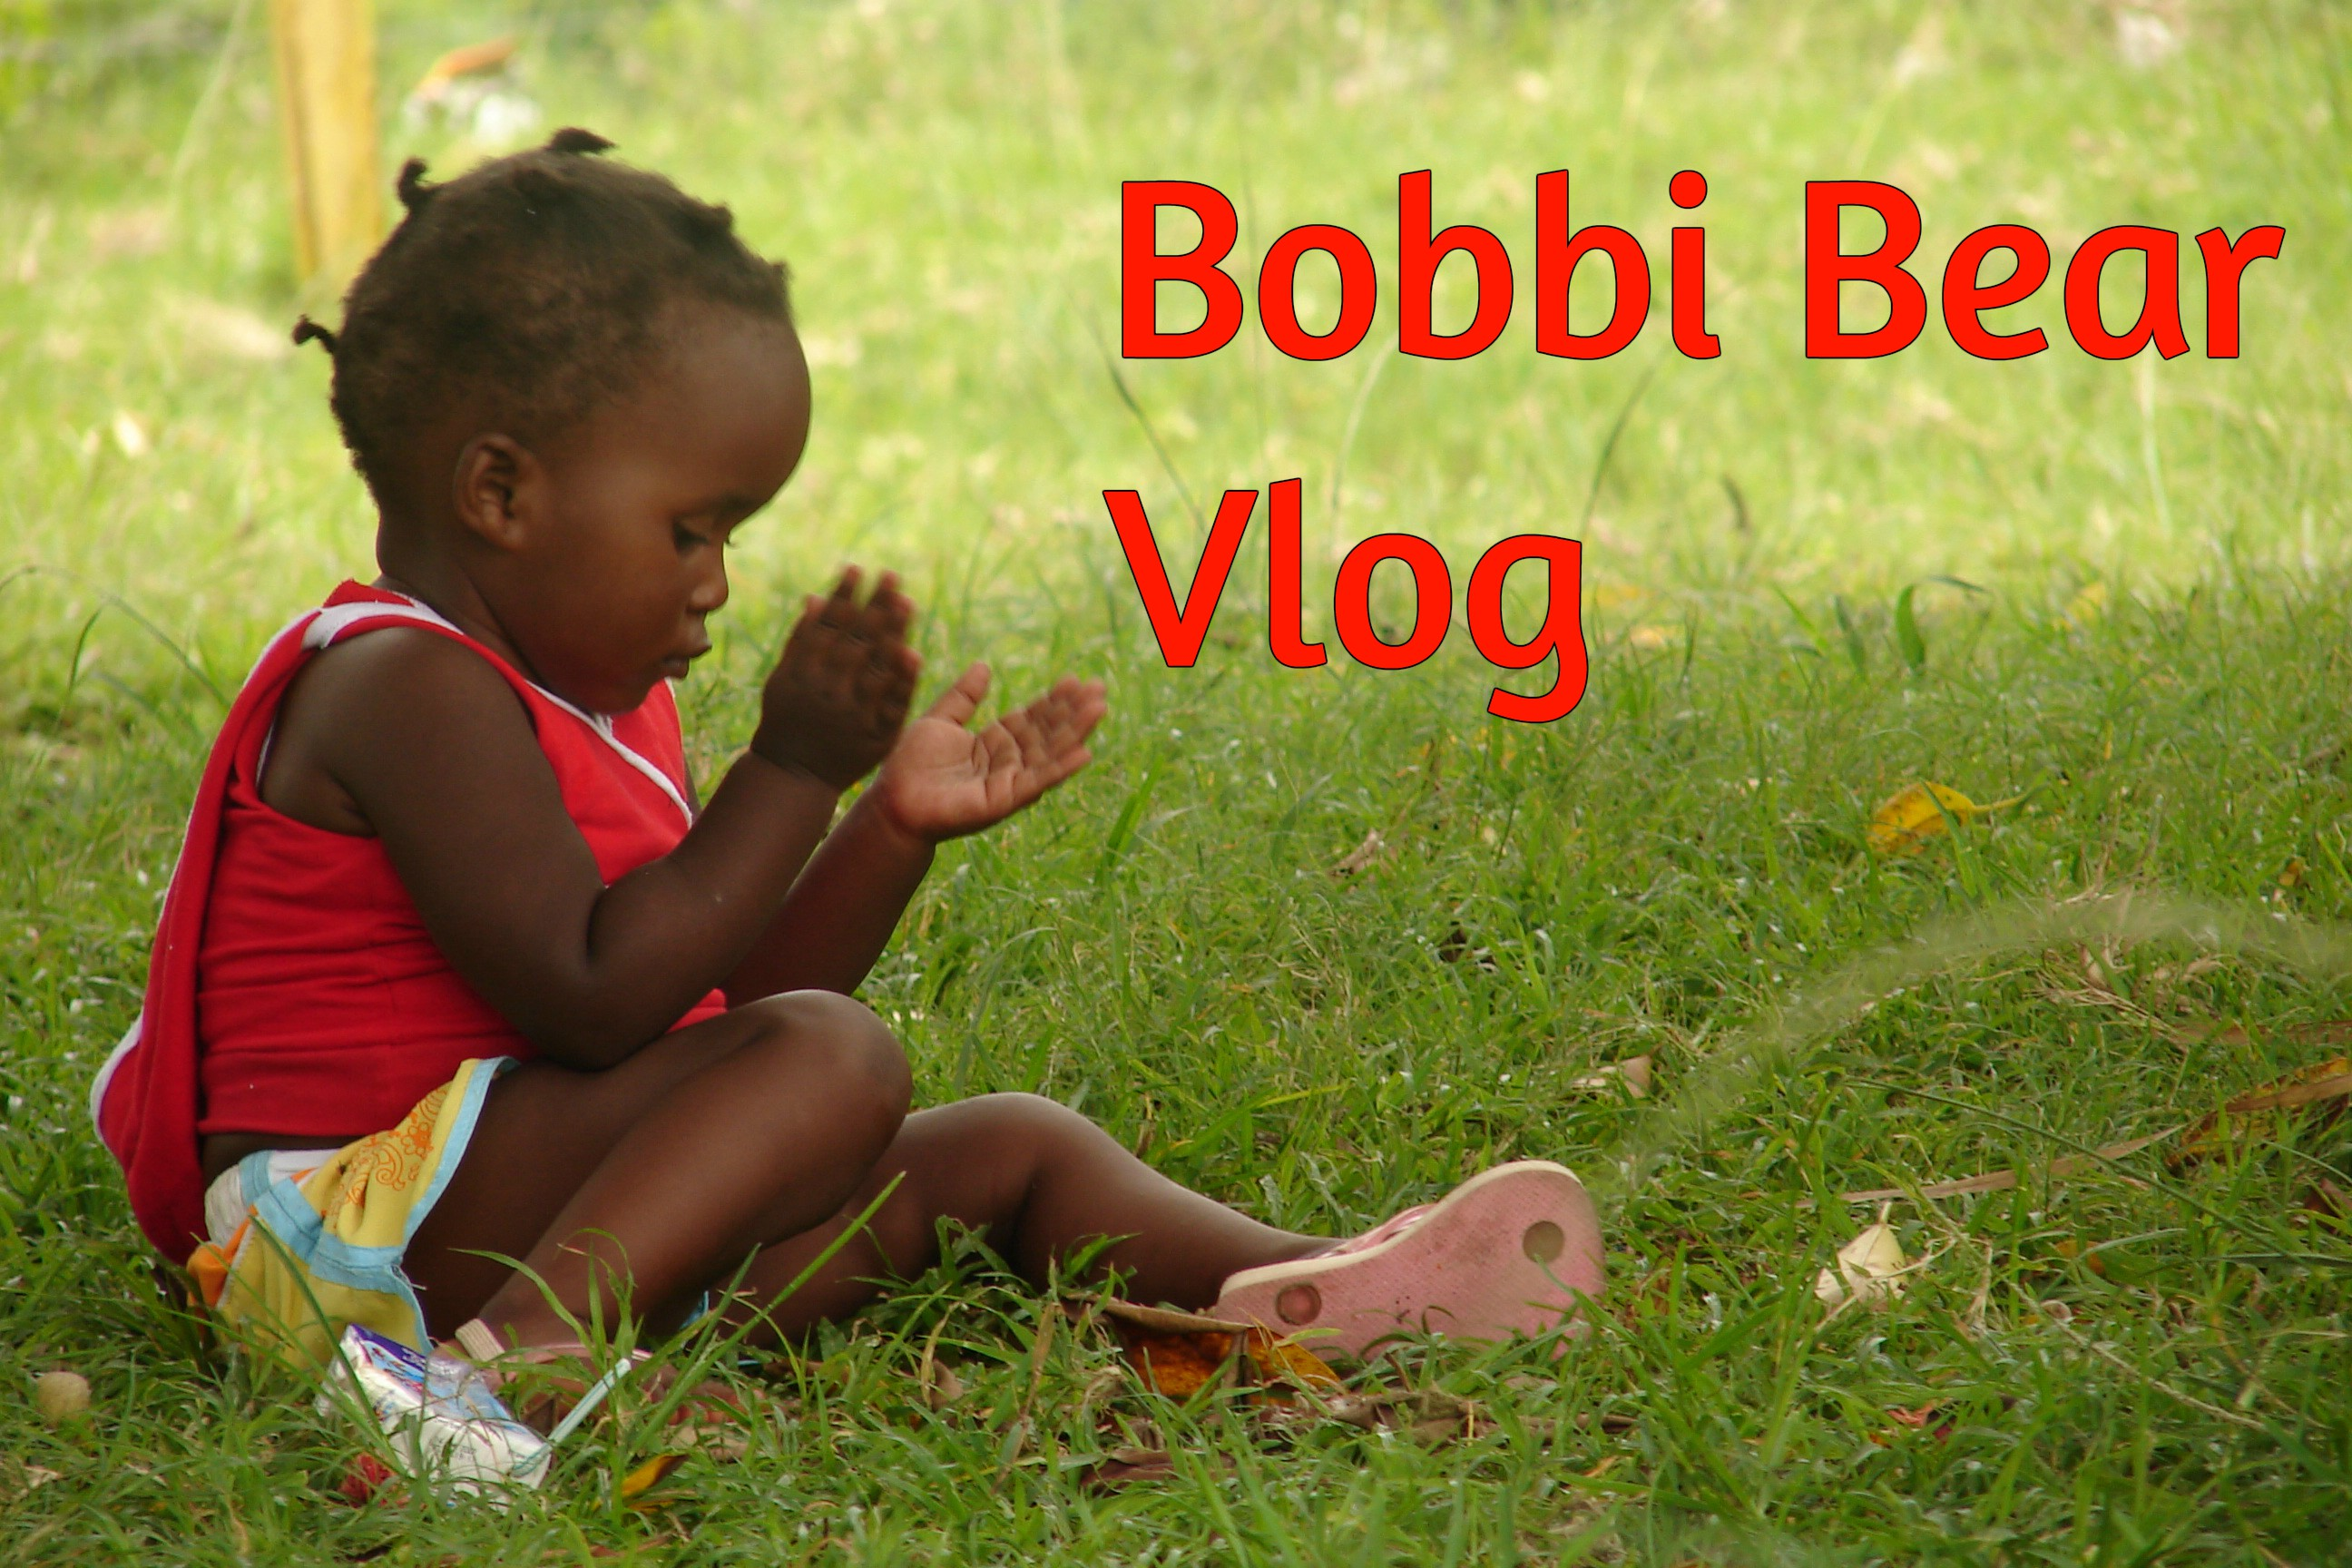 Operation Bobbi Bear Vlog